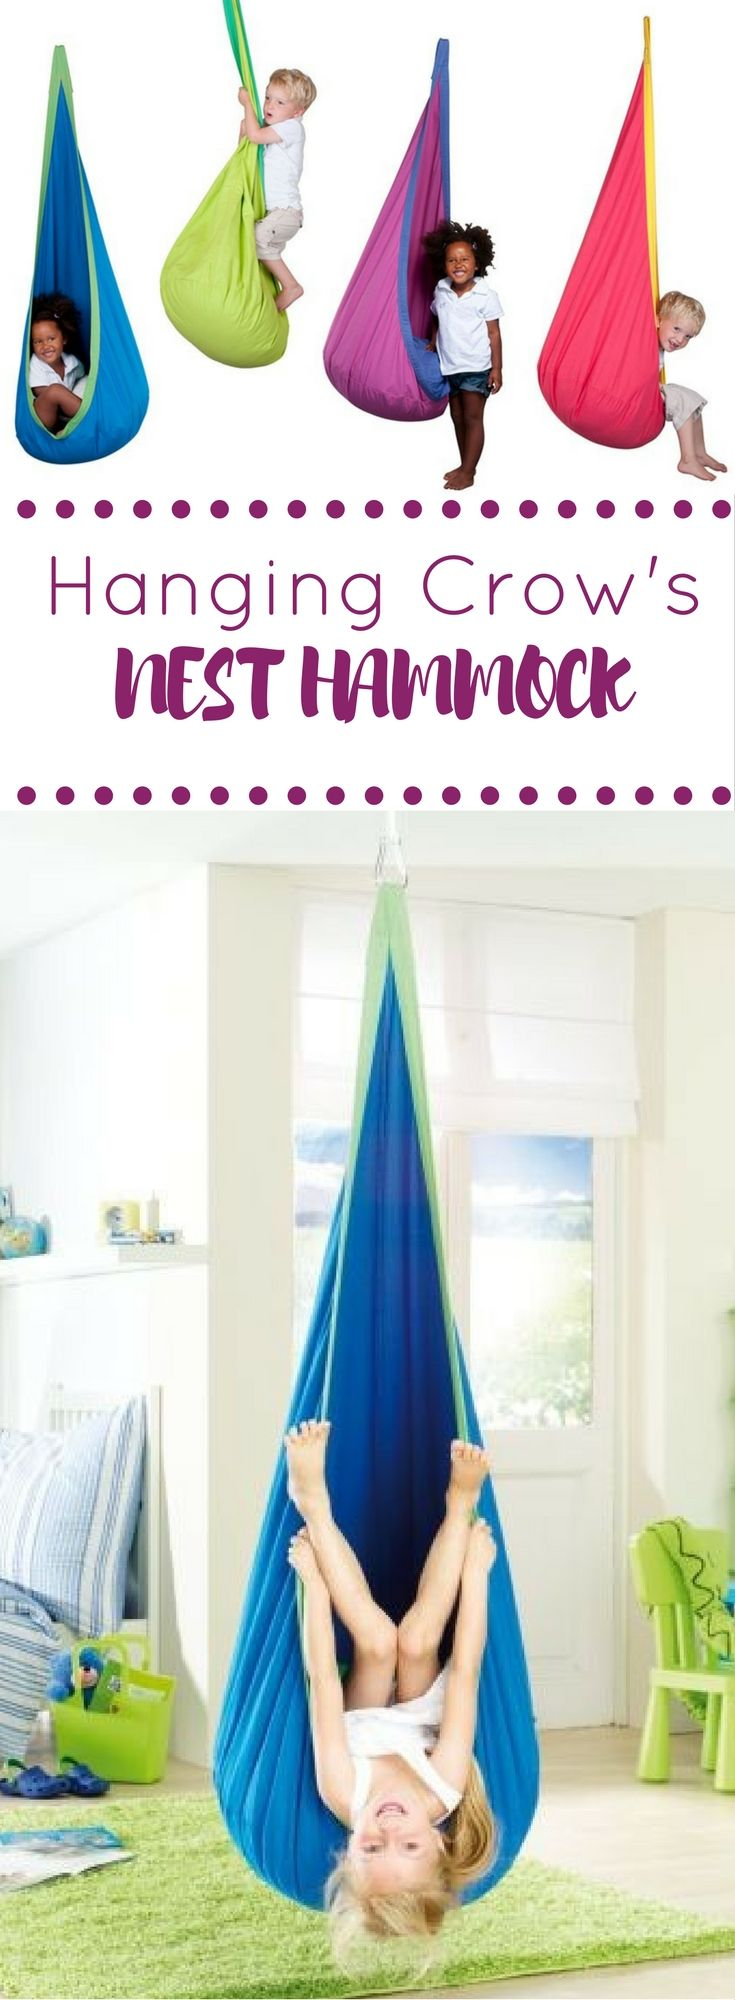 Awesome Kids Hammock + A Great Backyard Idea + Playroom + Interior Design +  Hanging Chair + Indoor Swing + Playroom Ideas + Great For A Reading Nook ...